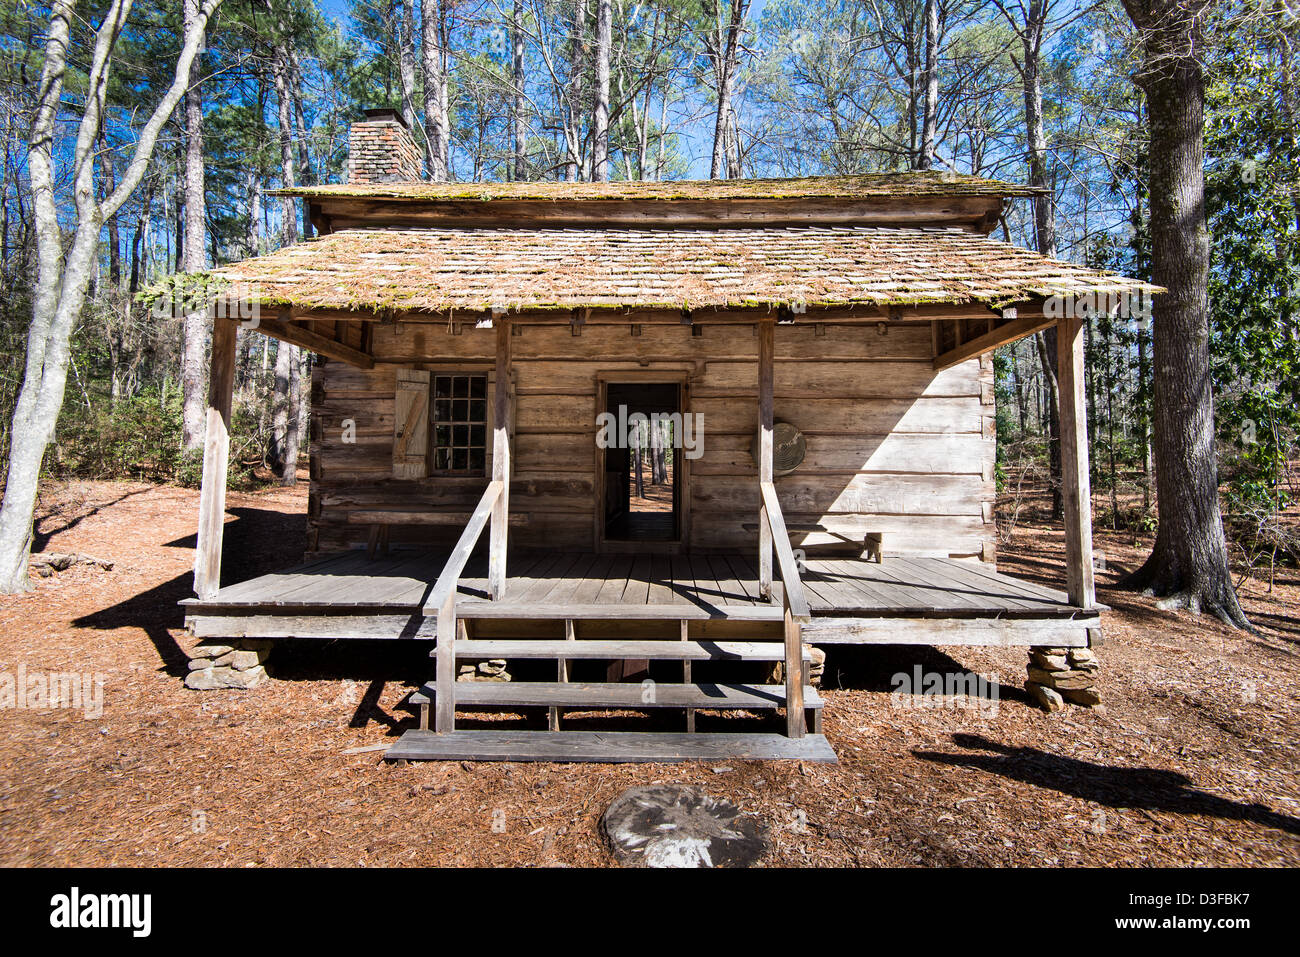 This Hand Hewn Longleaf Pine Log Cabin Was Built Around 1830 Imoved To Callaway  Gardens, Pine Mountain, Georgia In 1959.